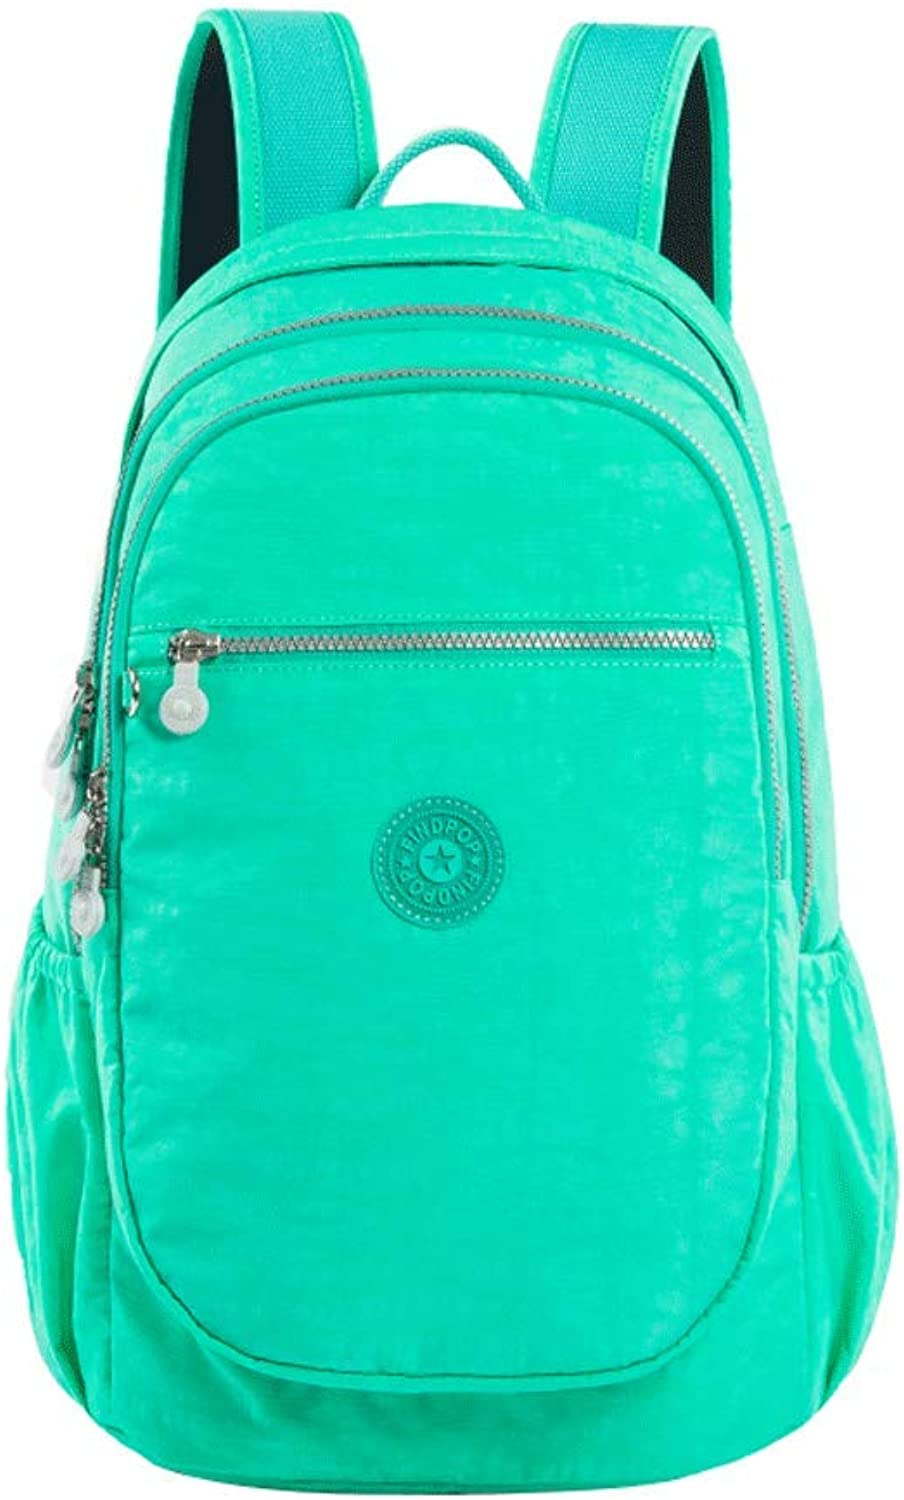 SLH Green Backpack Female Casual Waterproof Computer Bag Male Travel Backpack Nylon Backpack Student Bag (color   Green, Size   L-28  20  41cm)